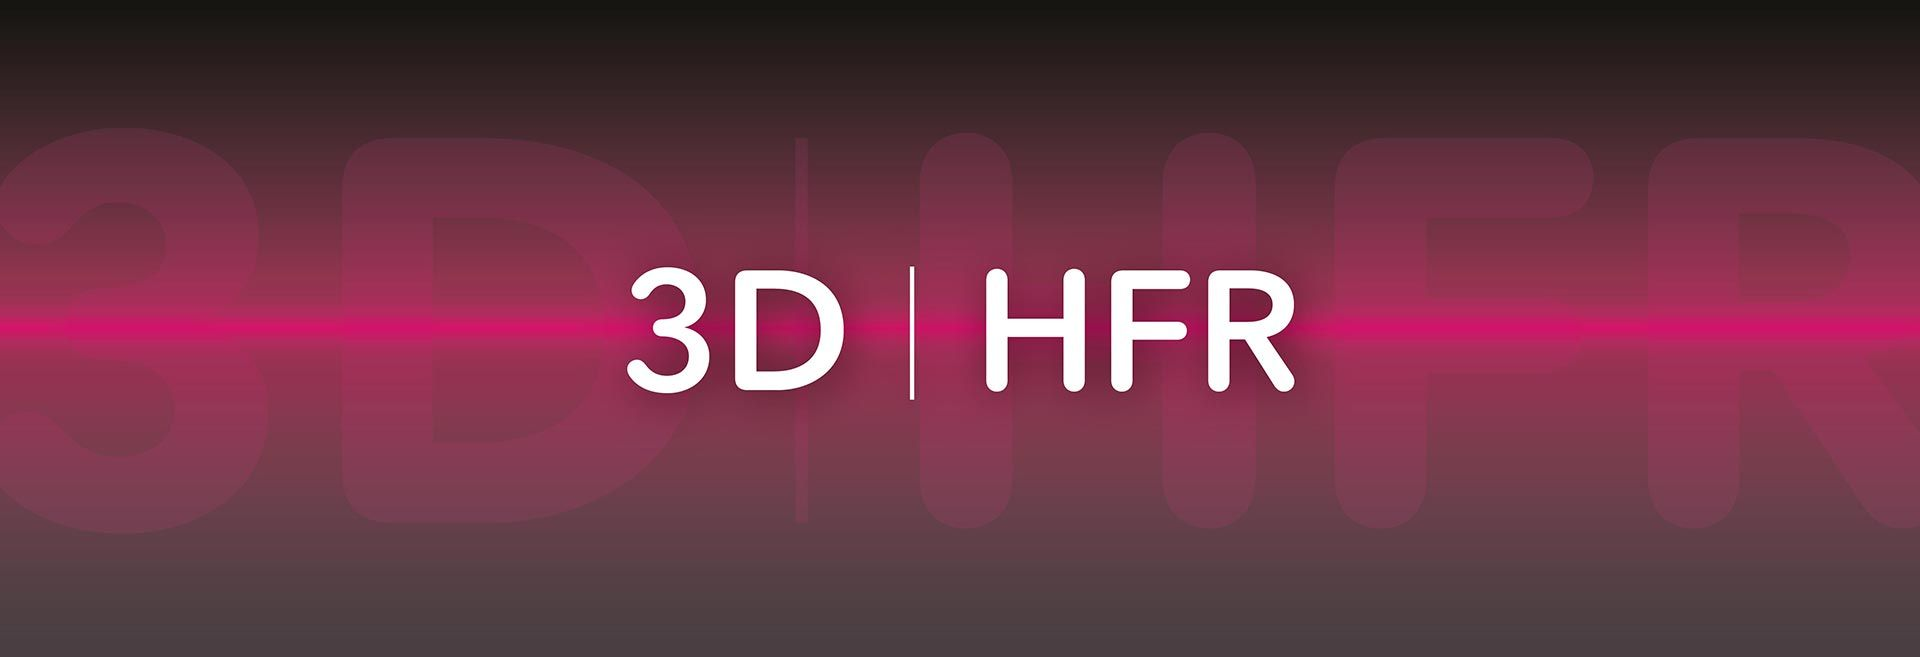 3d hfr, highframe rate